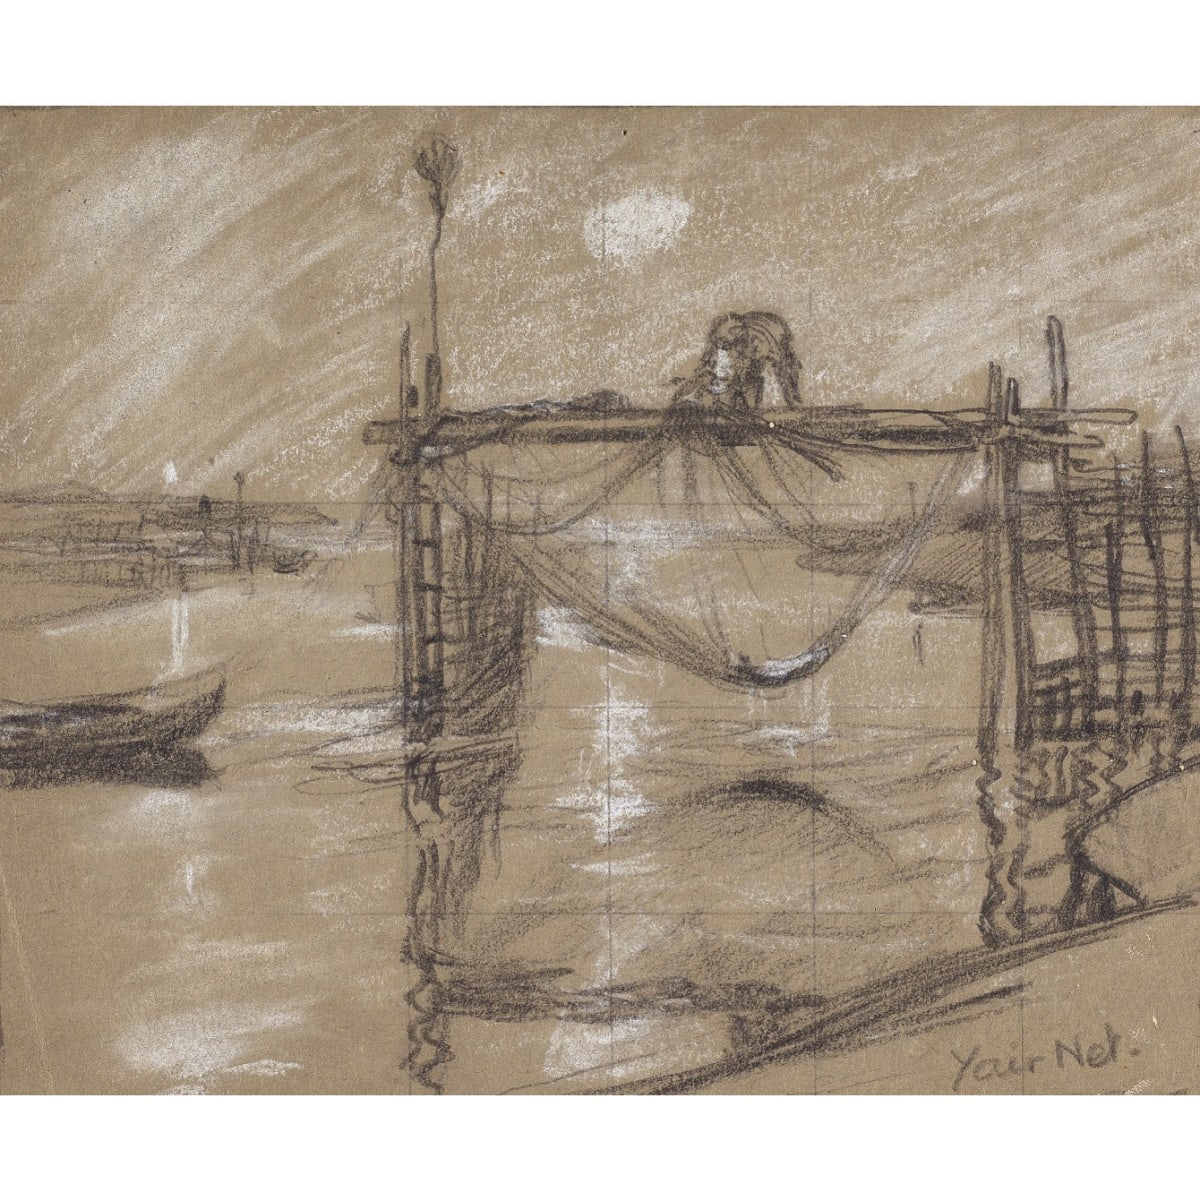 Charles Oppenheimer Yair Net inscribed with title pastel and pencil 6 x 7 1/2 inches